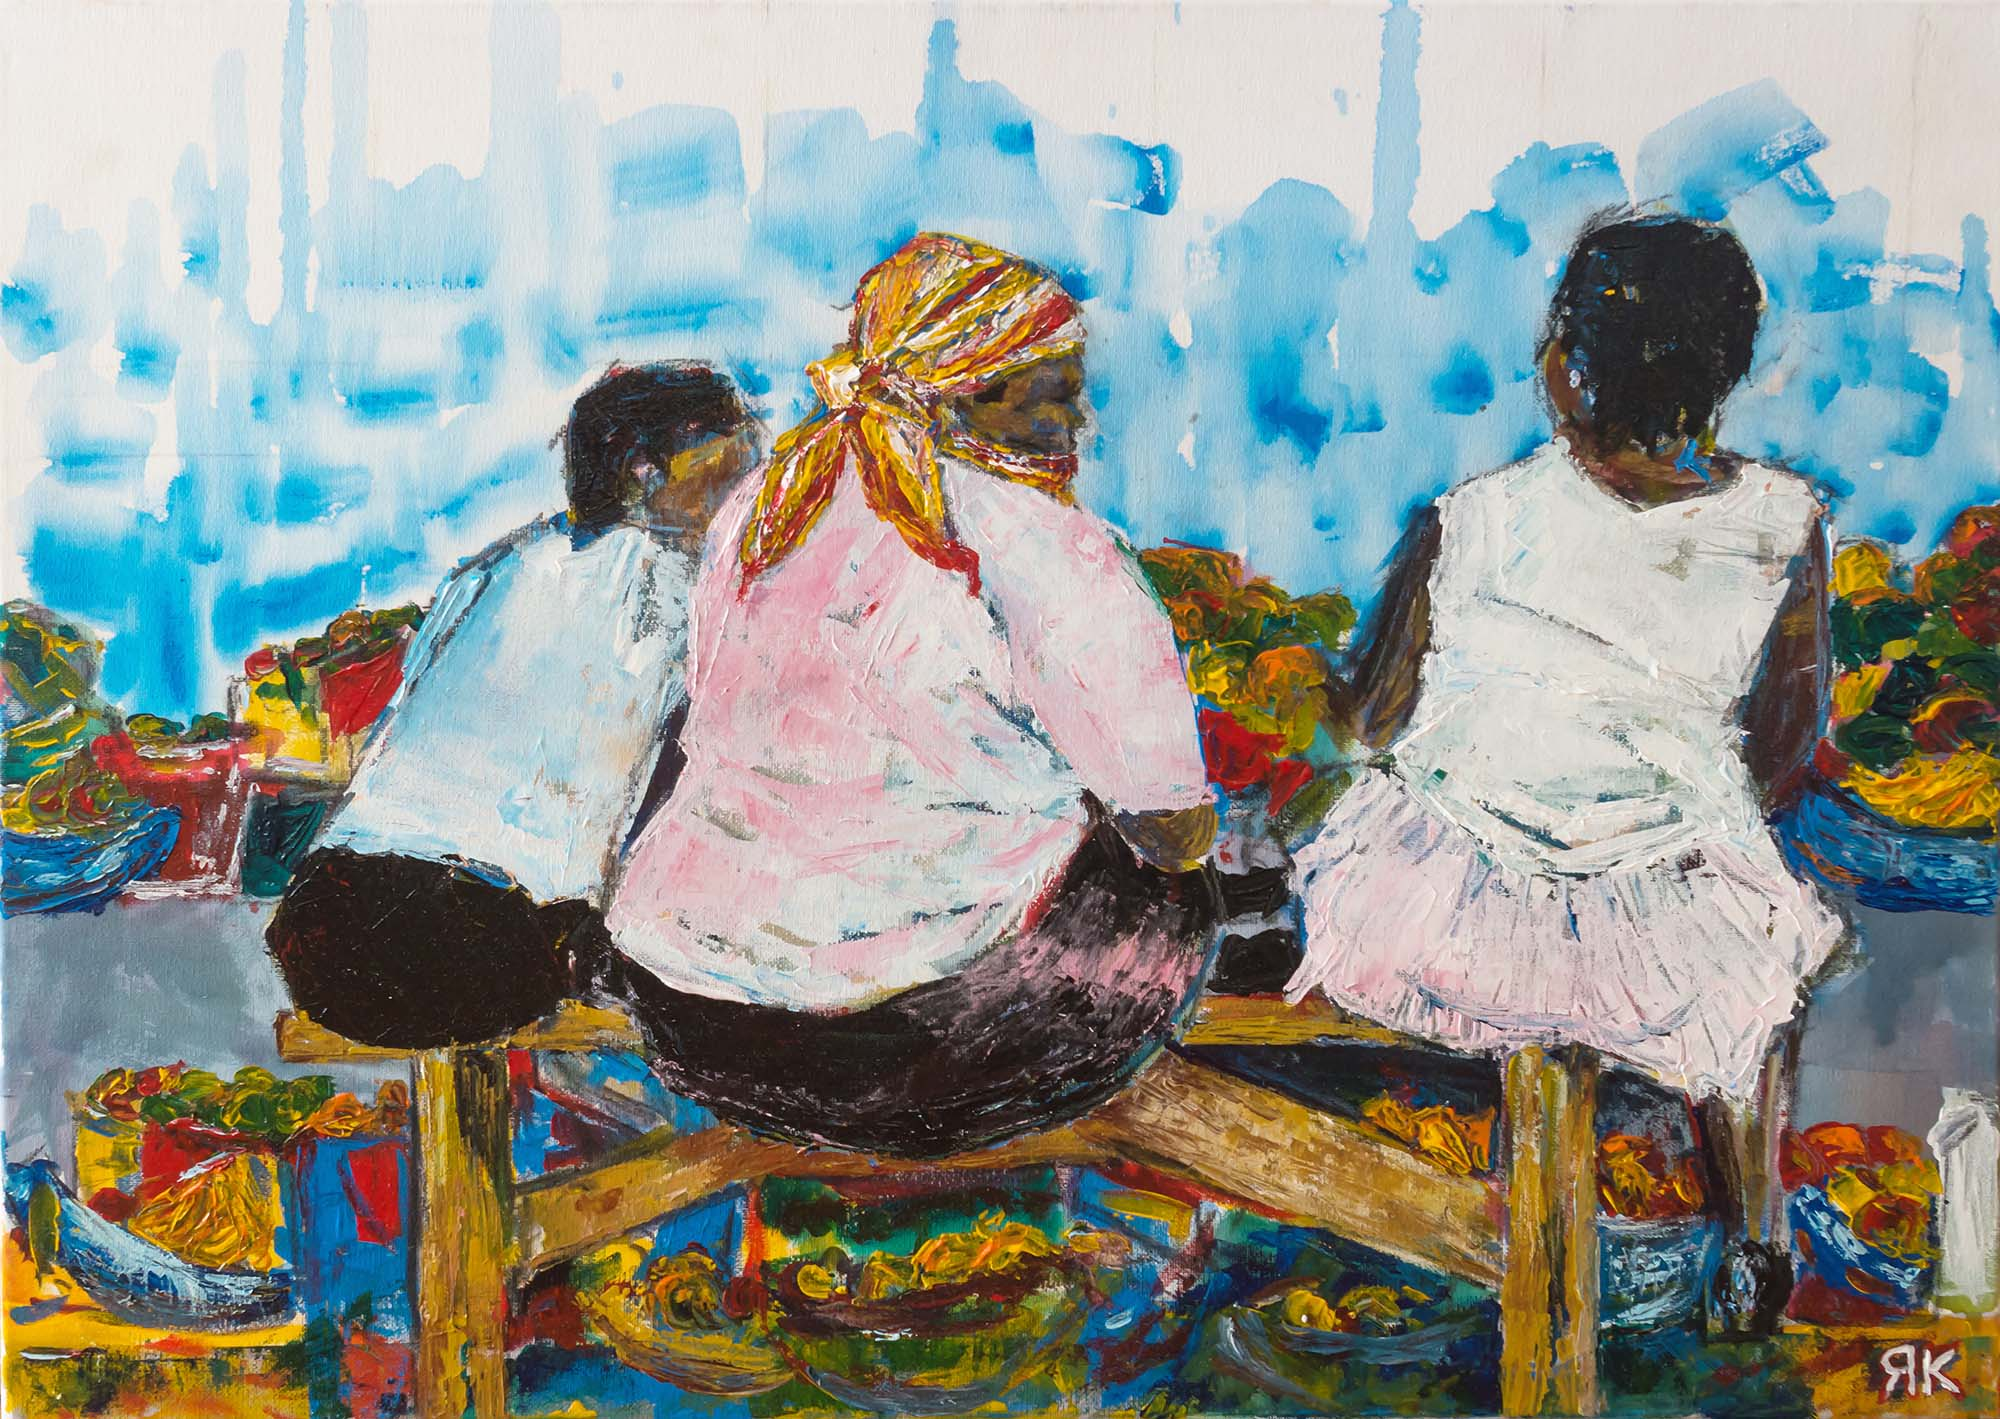 Three women sitting at a market in South Africa by Ria Kieboom